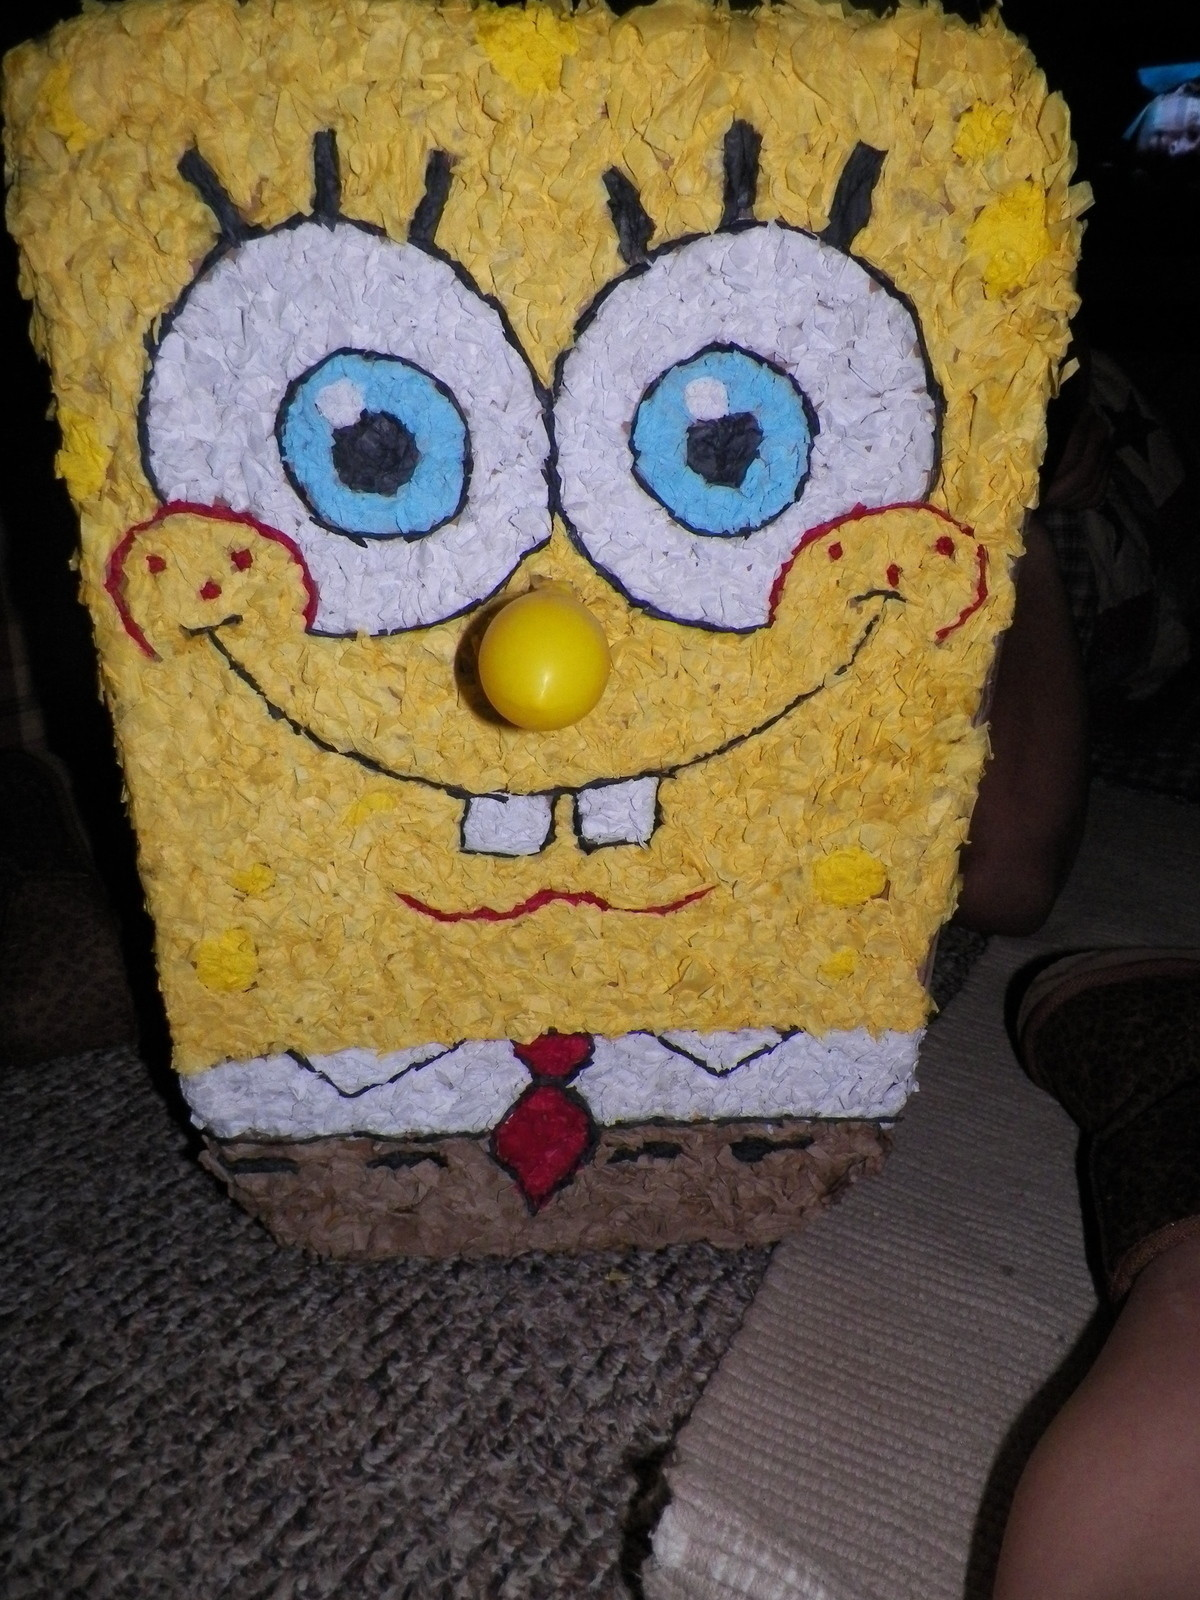 Spongebob Pinata 183 A Pi 241 Ata 183 Construction And Papercraft